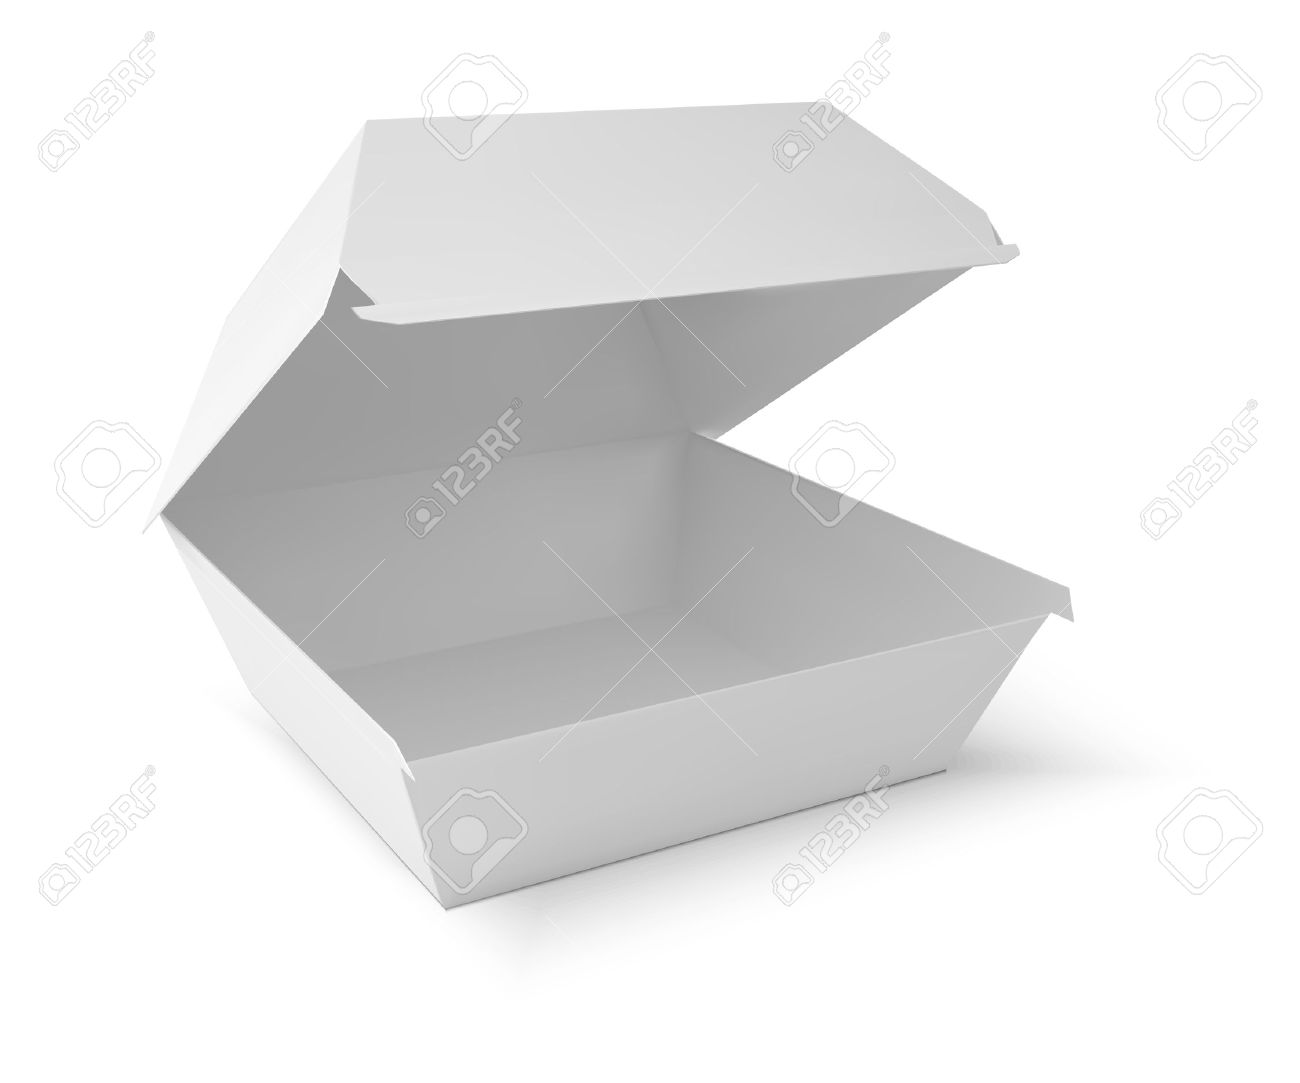 Food Box Cliparts 12.